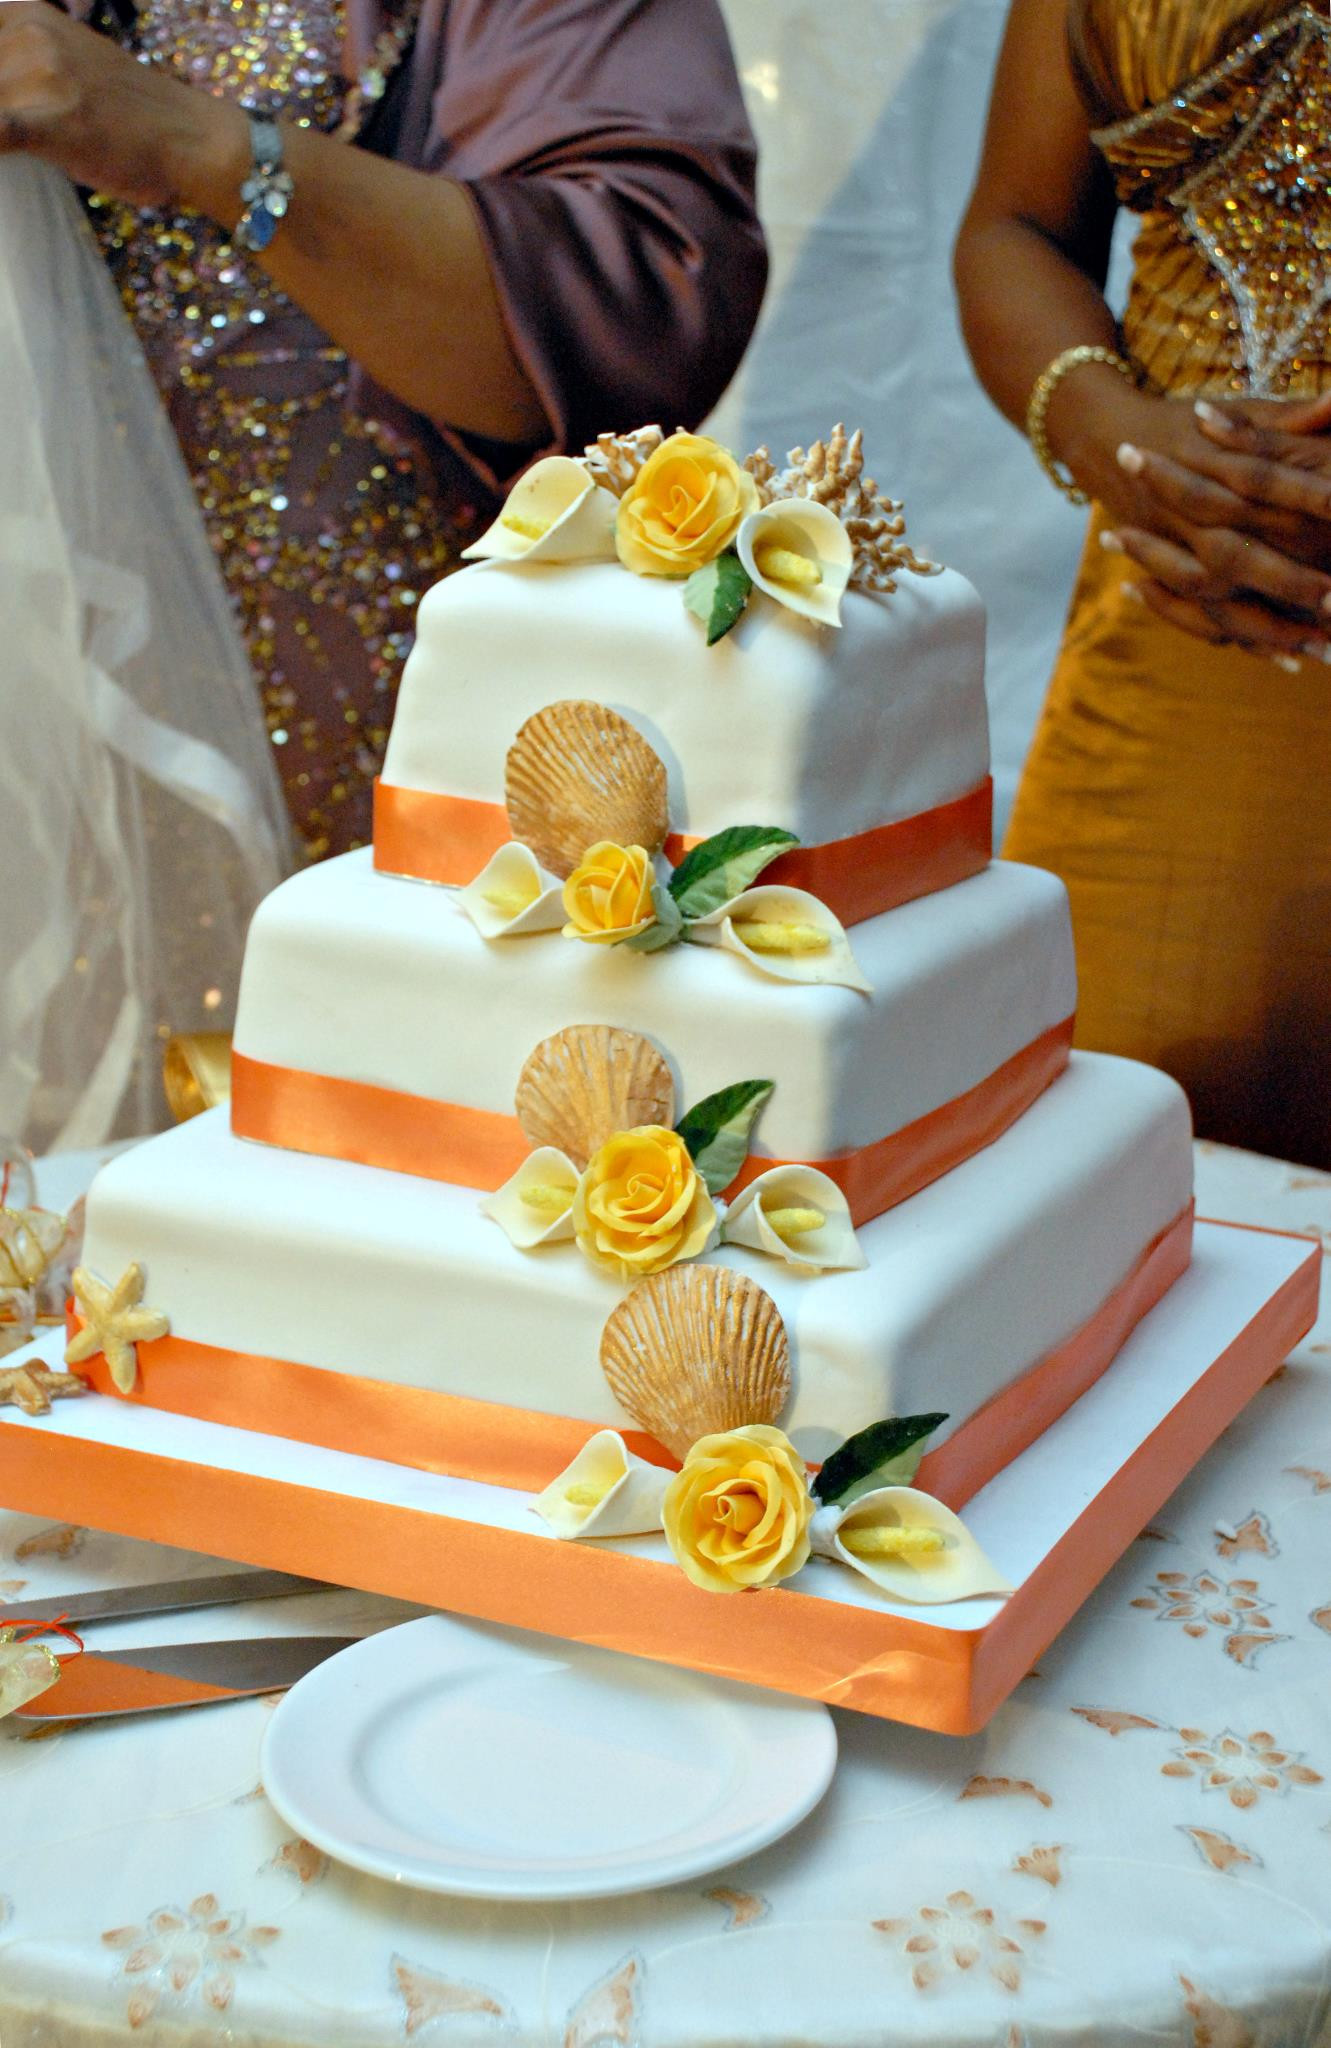 Types Of Wedding Cakes Flavors  Types of Wedding Cake & Flavors Preferred – Jamaica